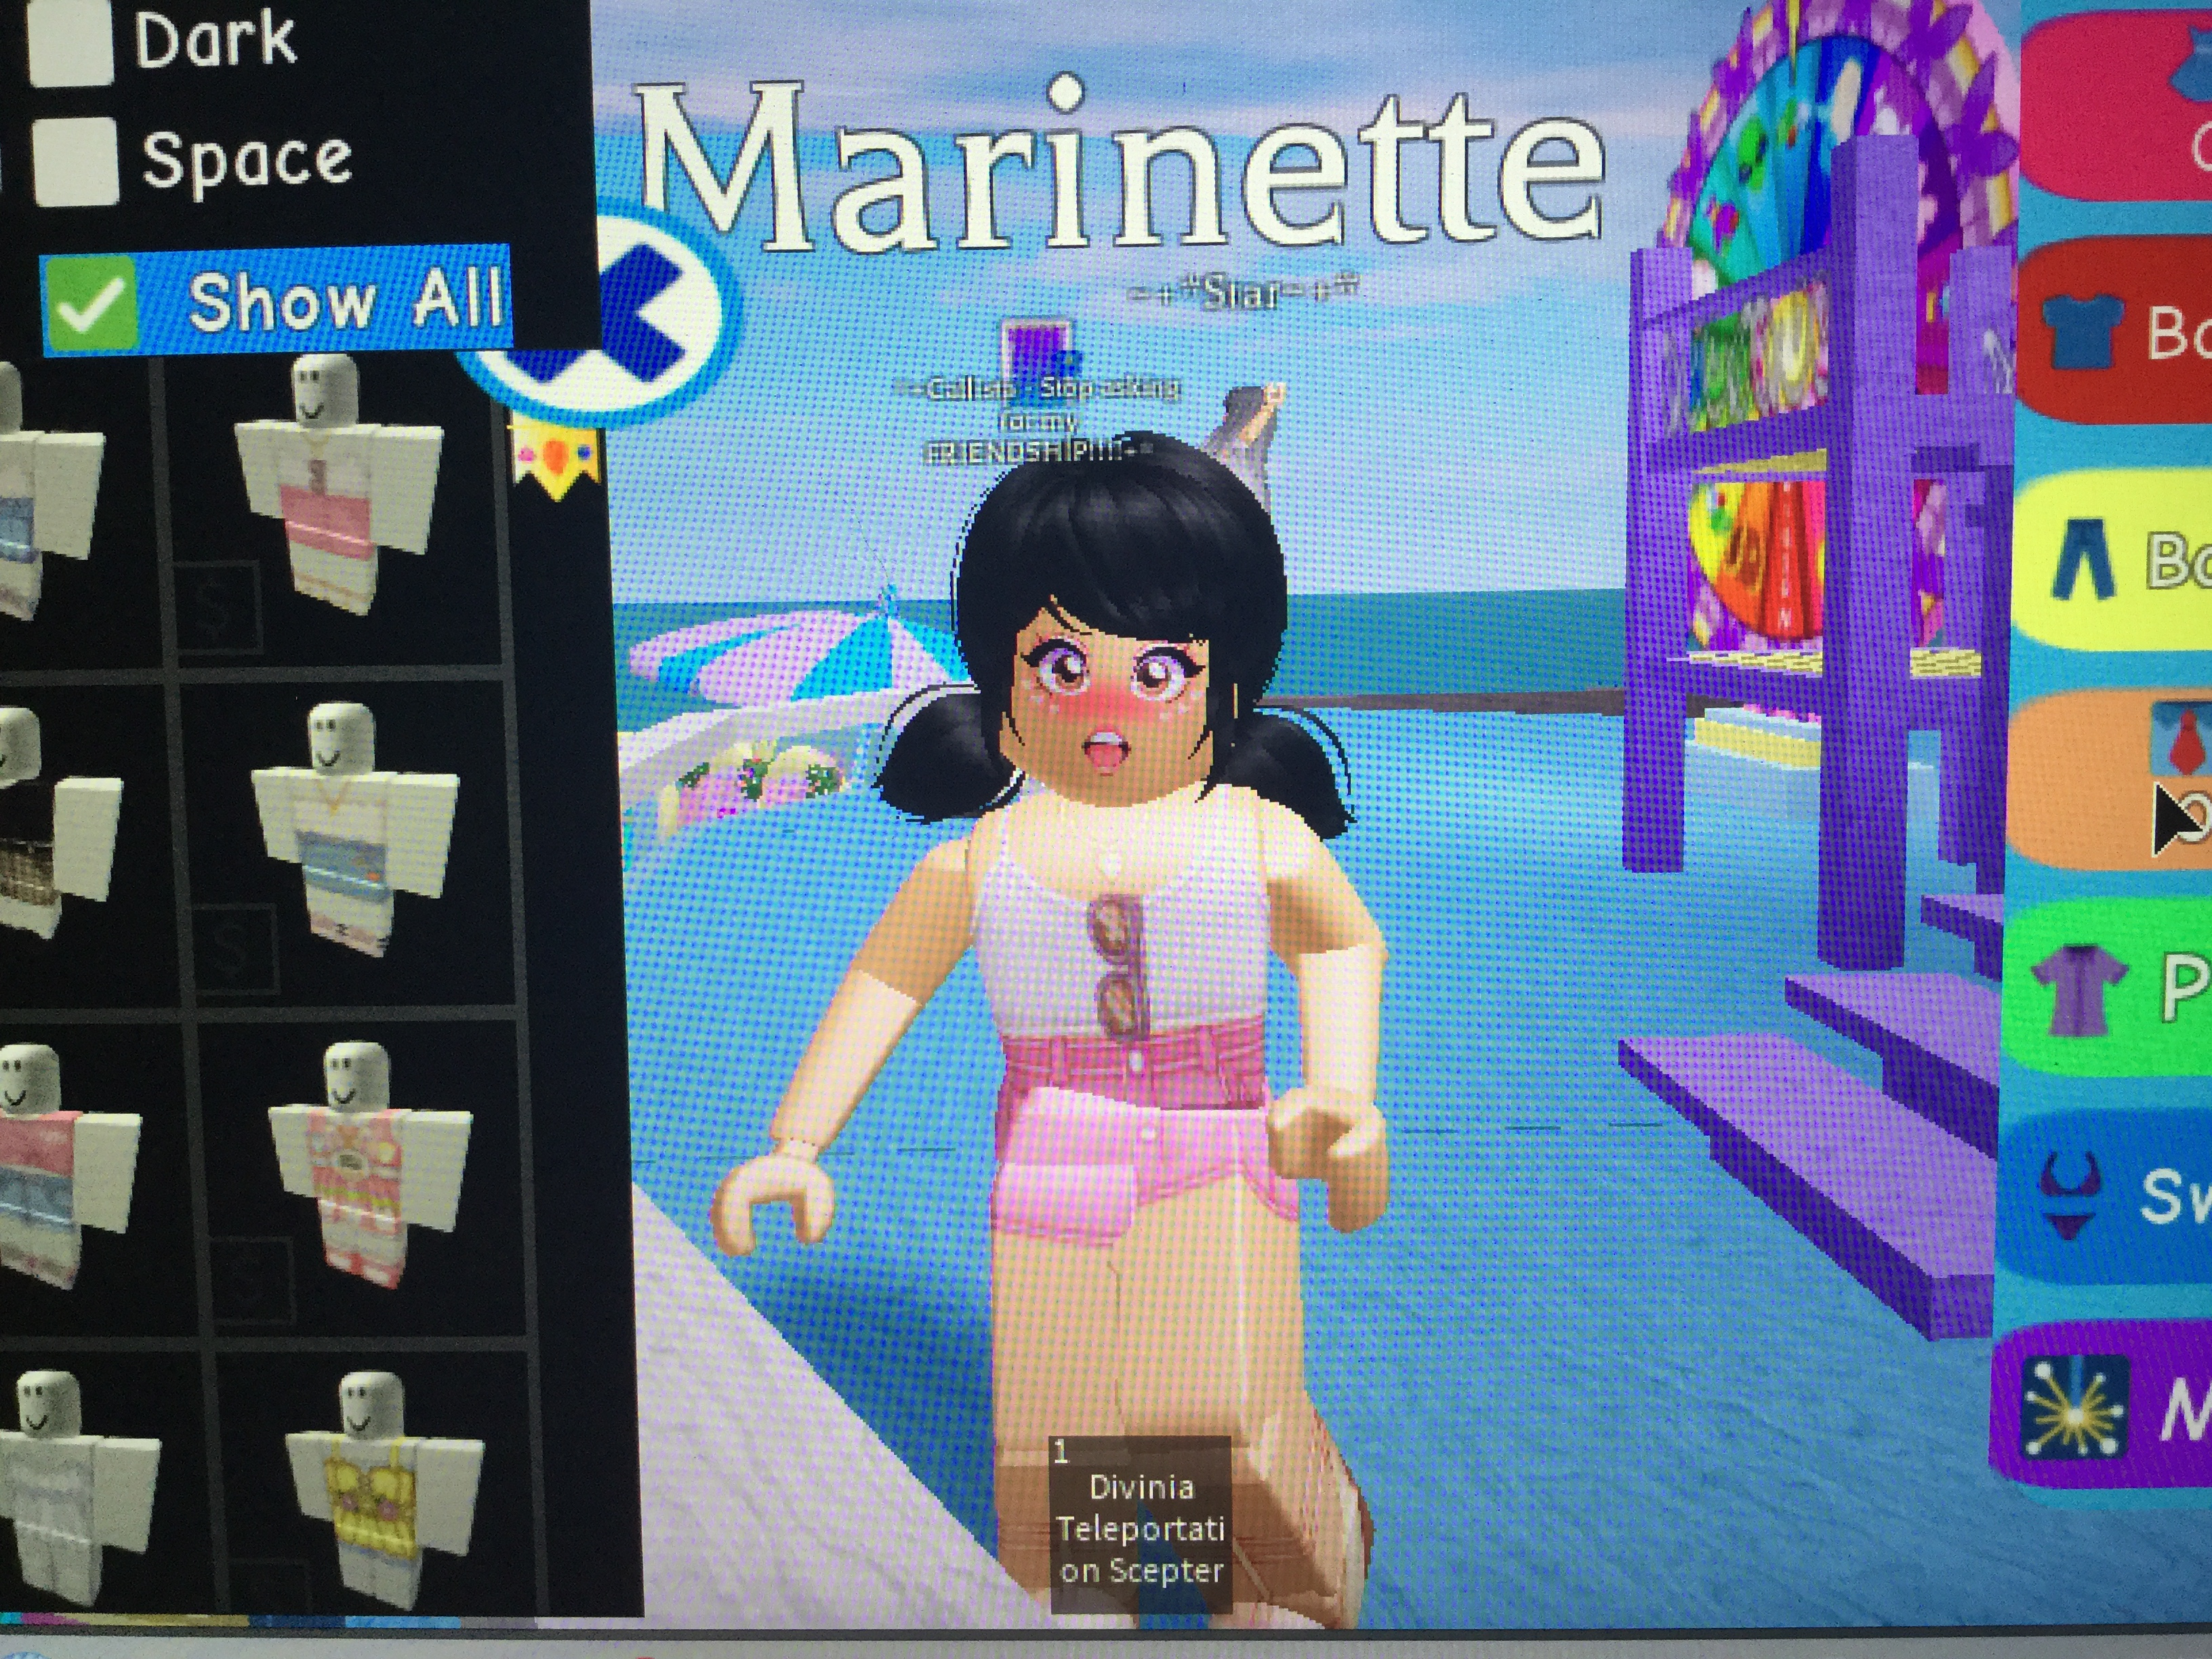 Ladybug Roblox Holy Moly So I Was Just Playing Royal High On Roblox And I M Blown They Have Her Exact Hair Fandom